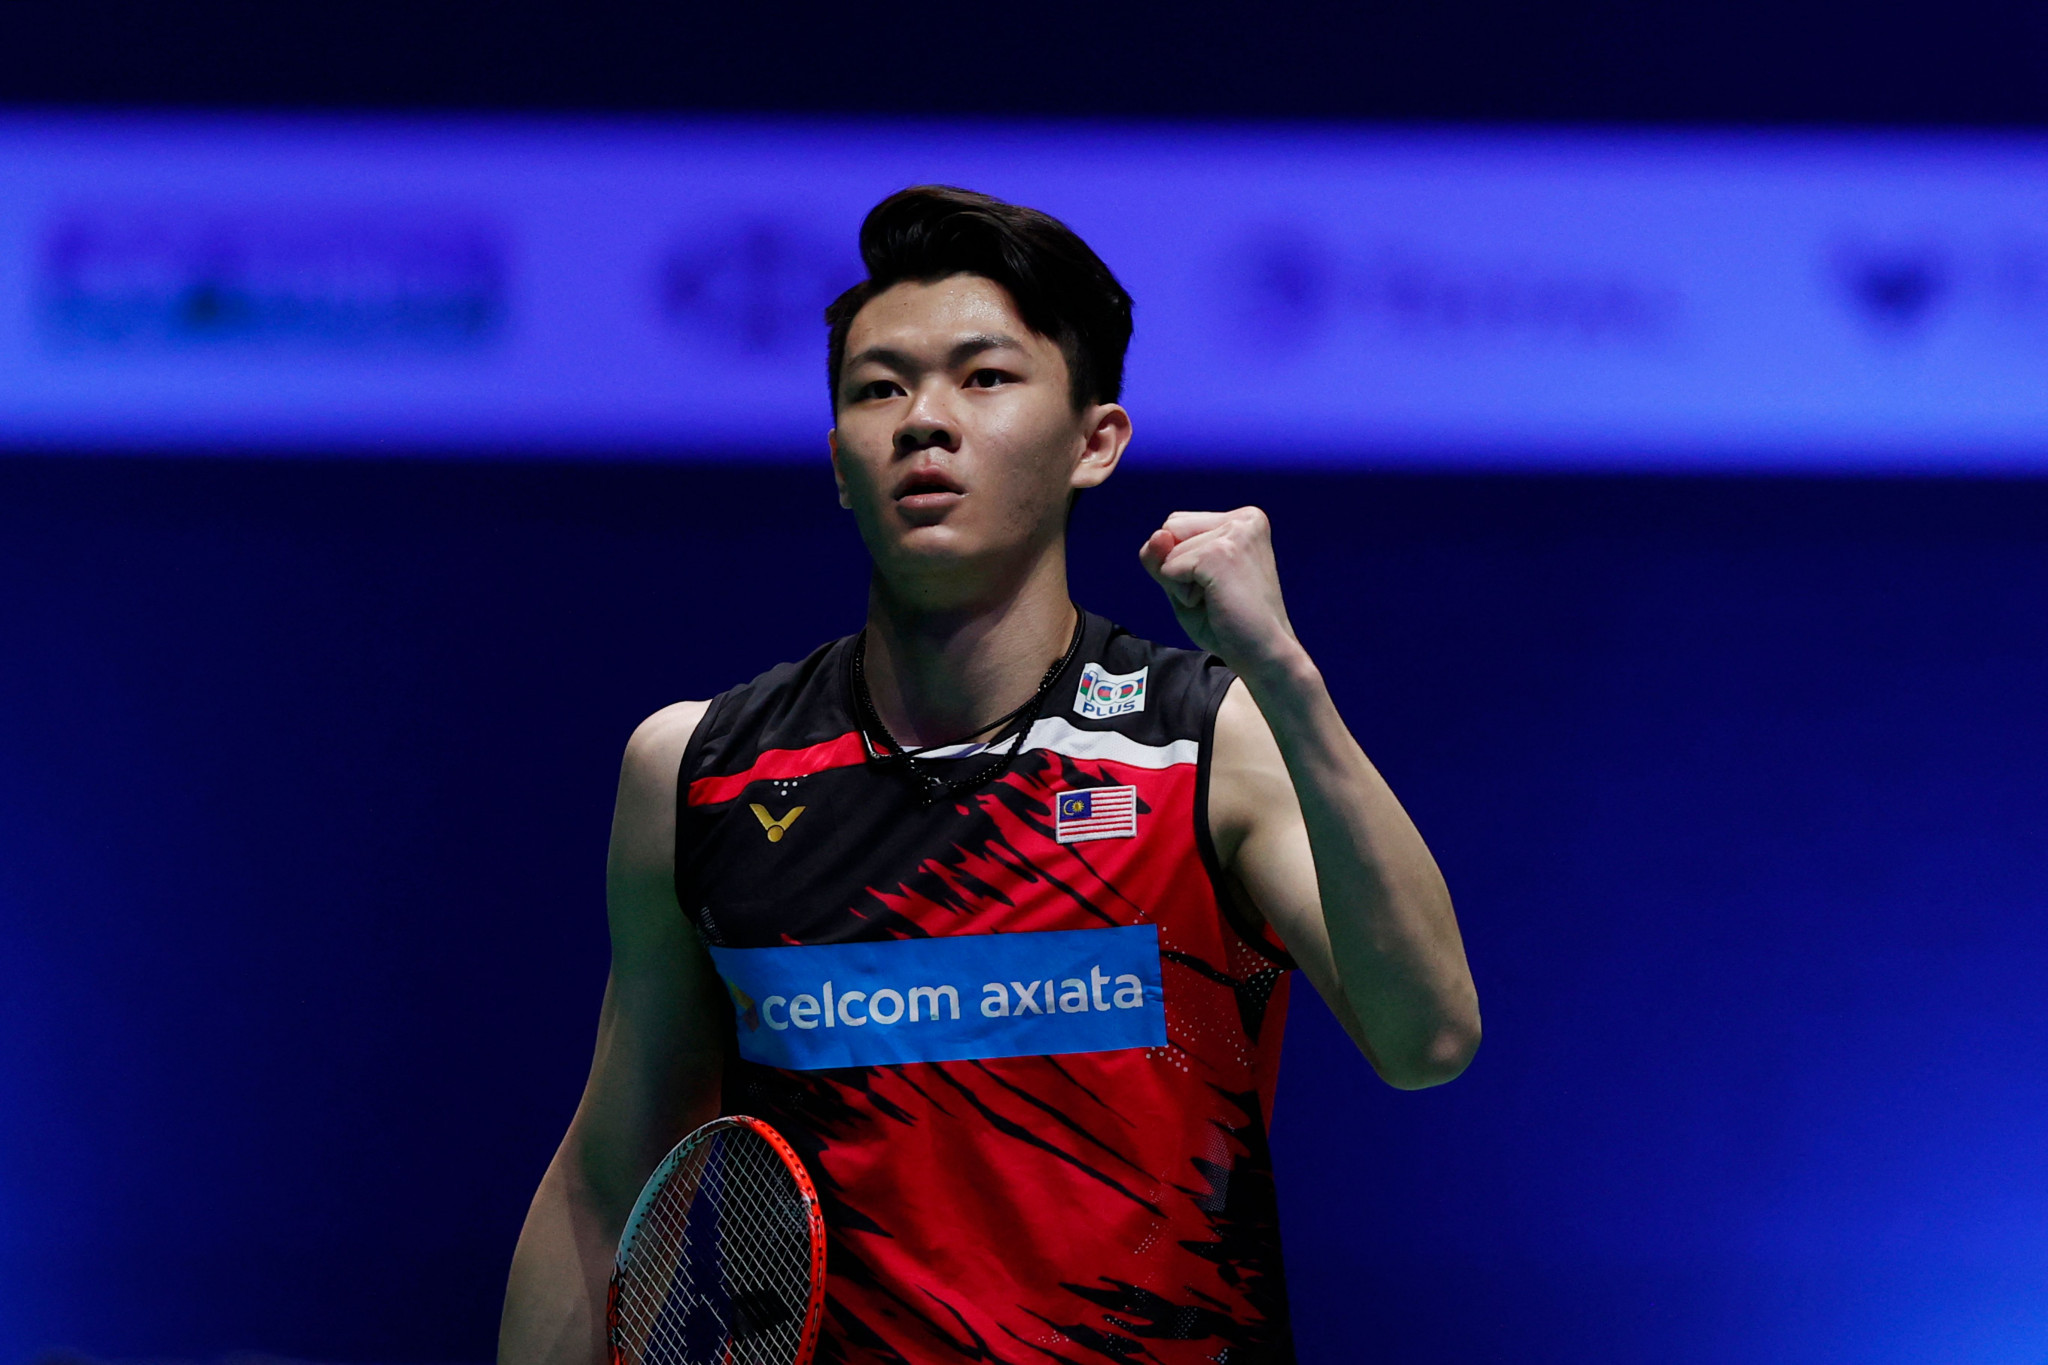 Malaysia's Lee Zii Jia is expected to be a medal contender at Tokyo 2020, but the Badminton Association of Malaysia is sticking with its target of Paris 2024 for winning the nation's first gold medal ©Getty Images